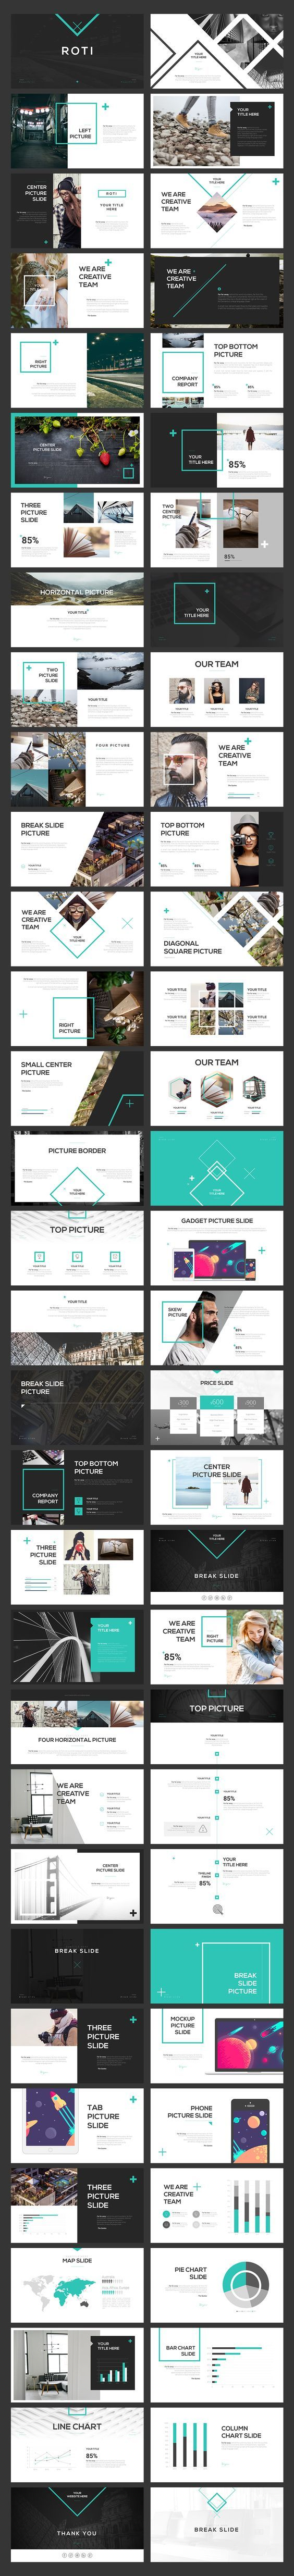 ROTI Keynote Template by Angkalimabelas on @creativemarket: